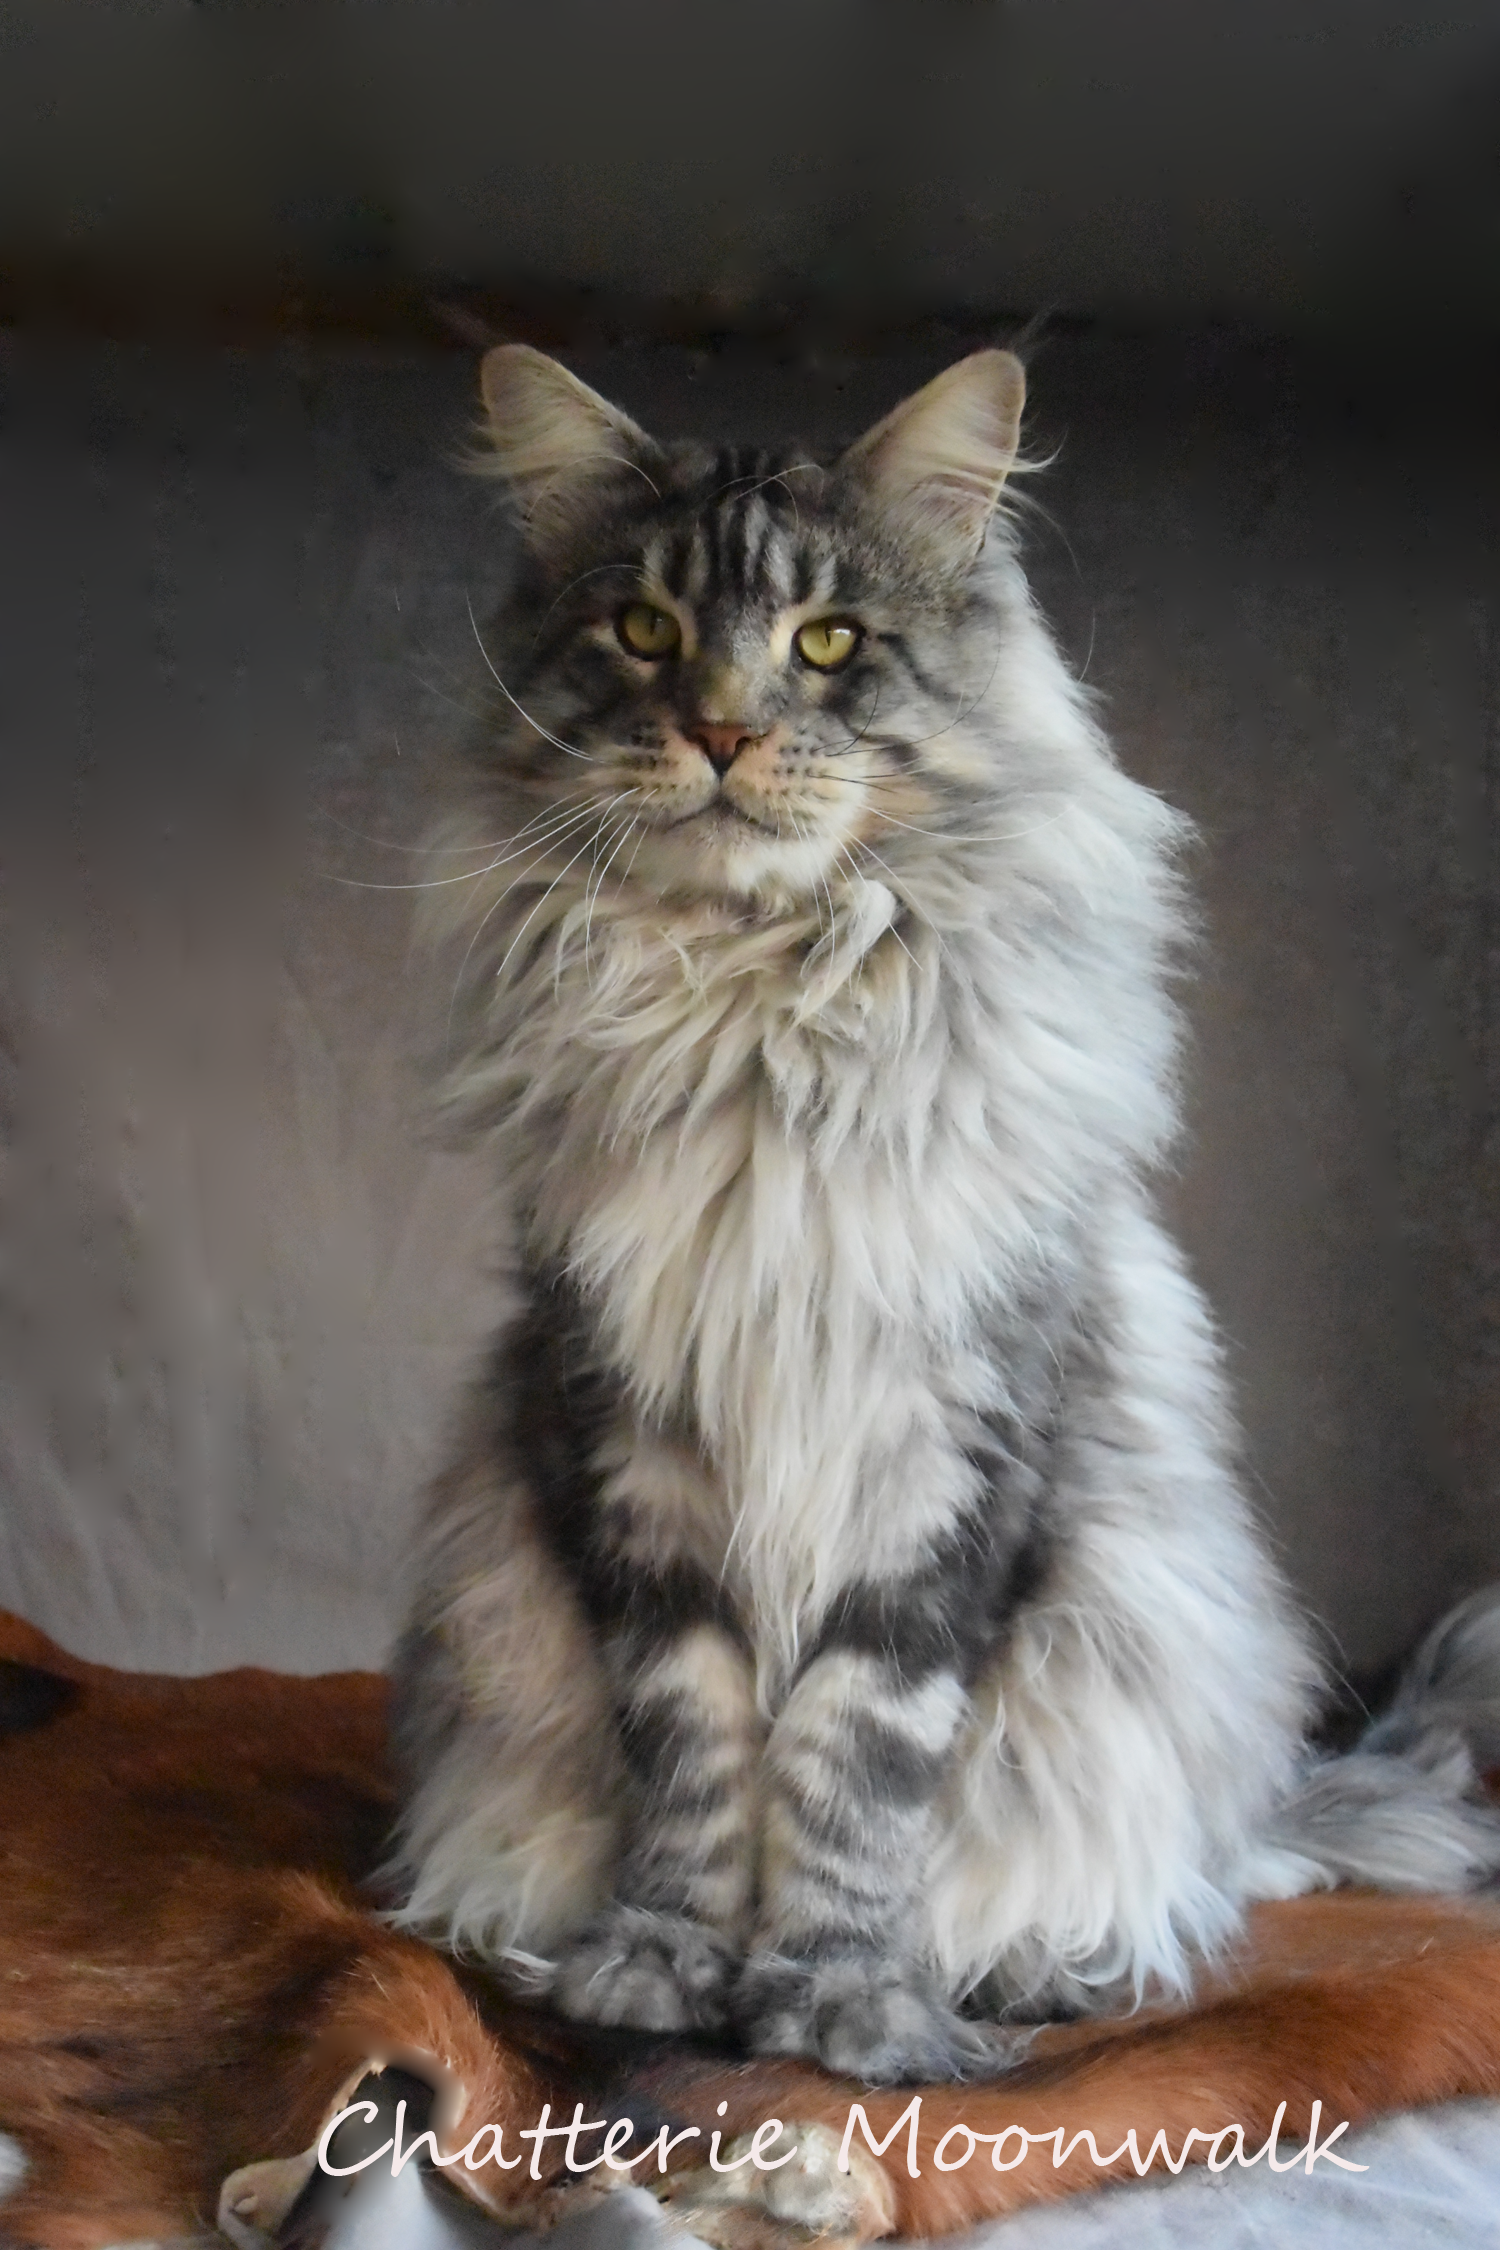 maine coons chatterie moonwalk. Black Bedroom Furniture Sets. Home Design Ideas